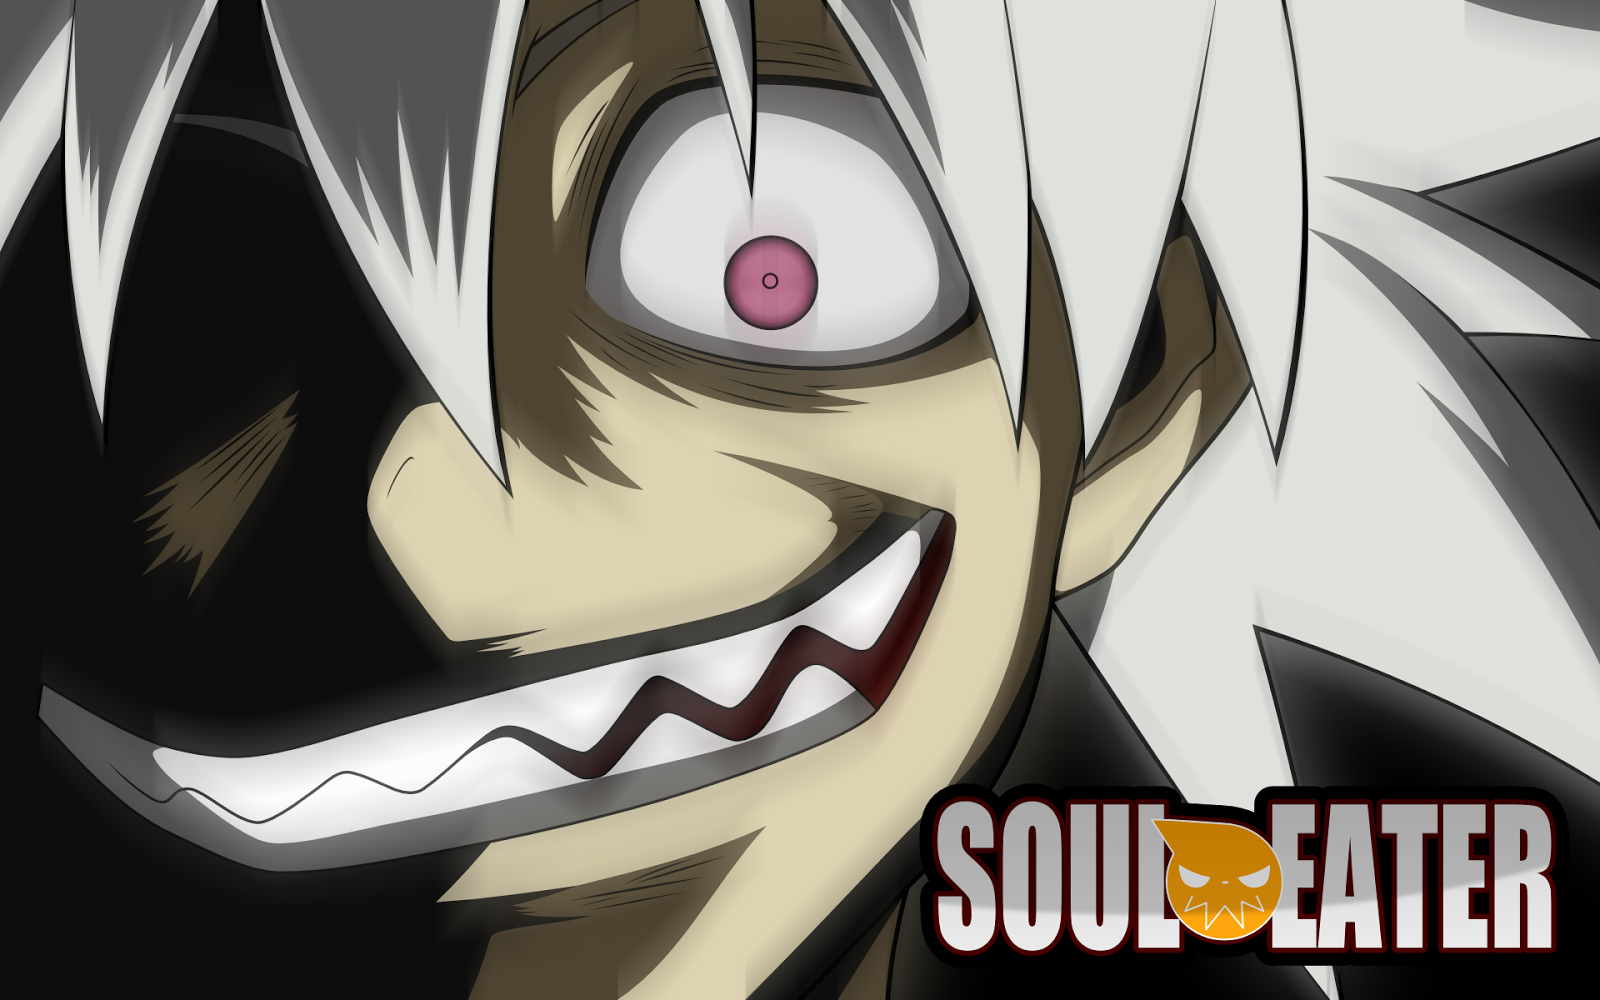 Soul-eater-giant-mouth